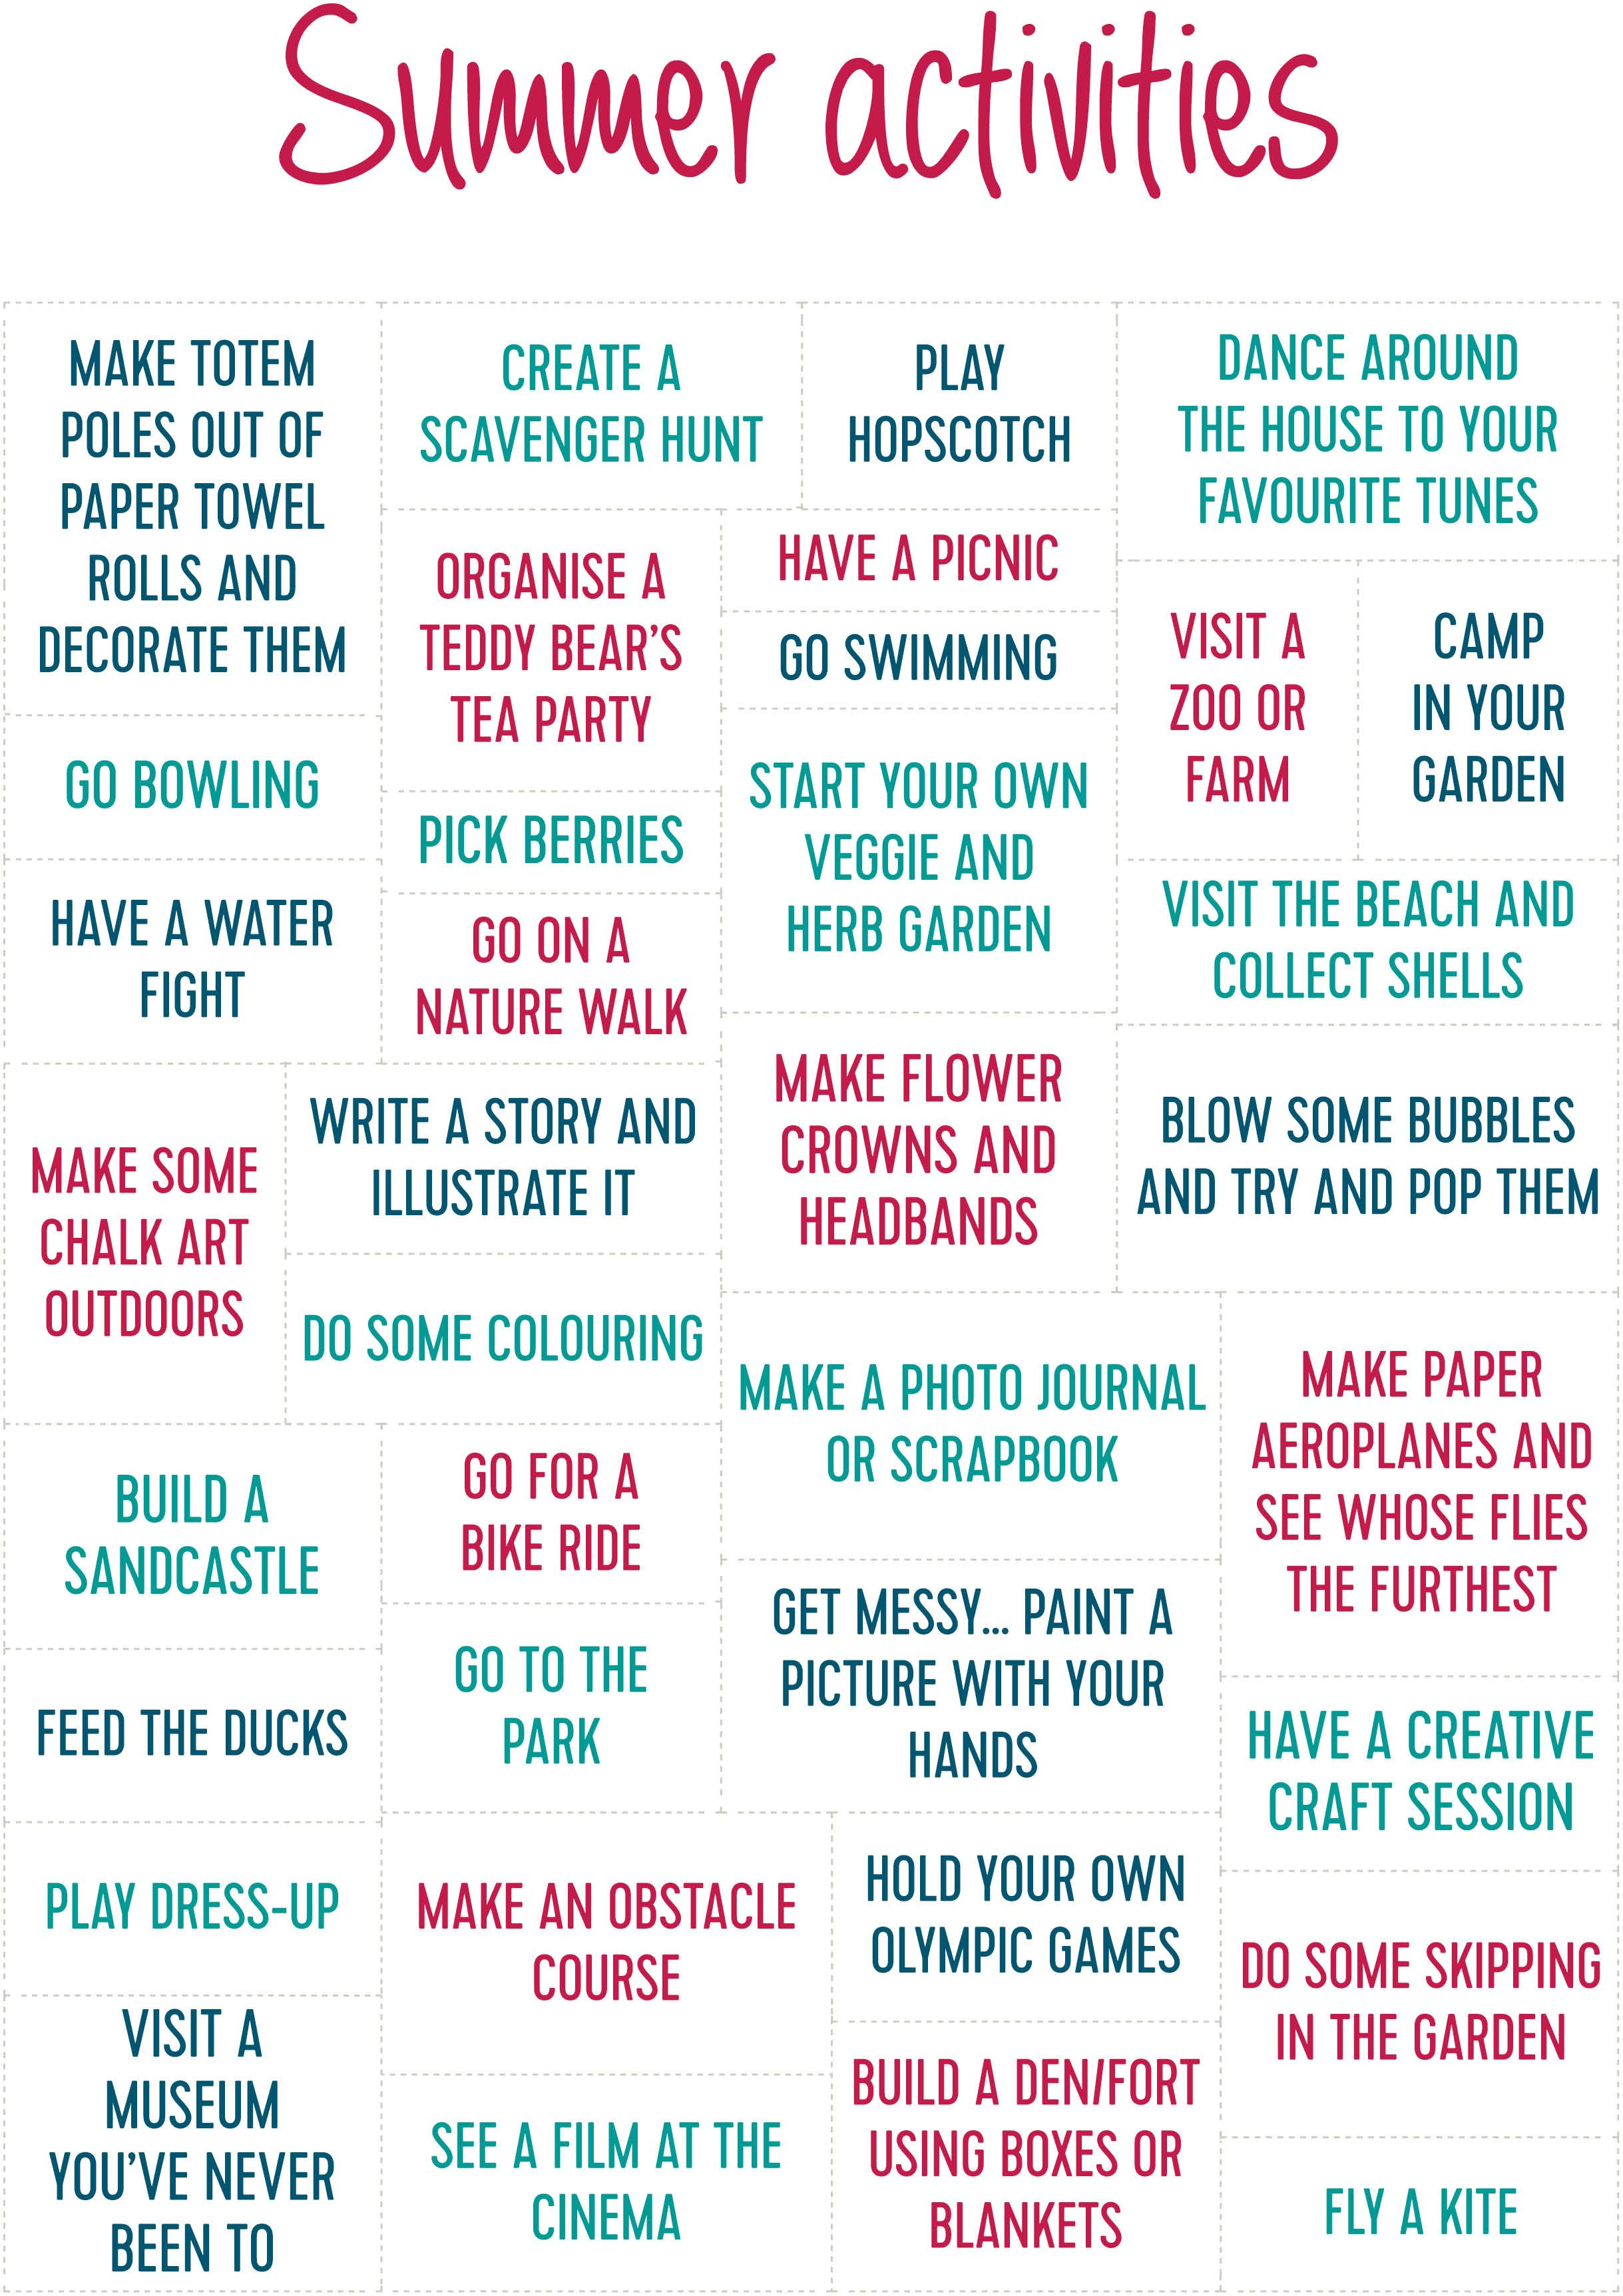 50 Activities To Keep The Kids Busy This Summer Check Out